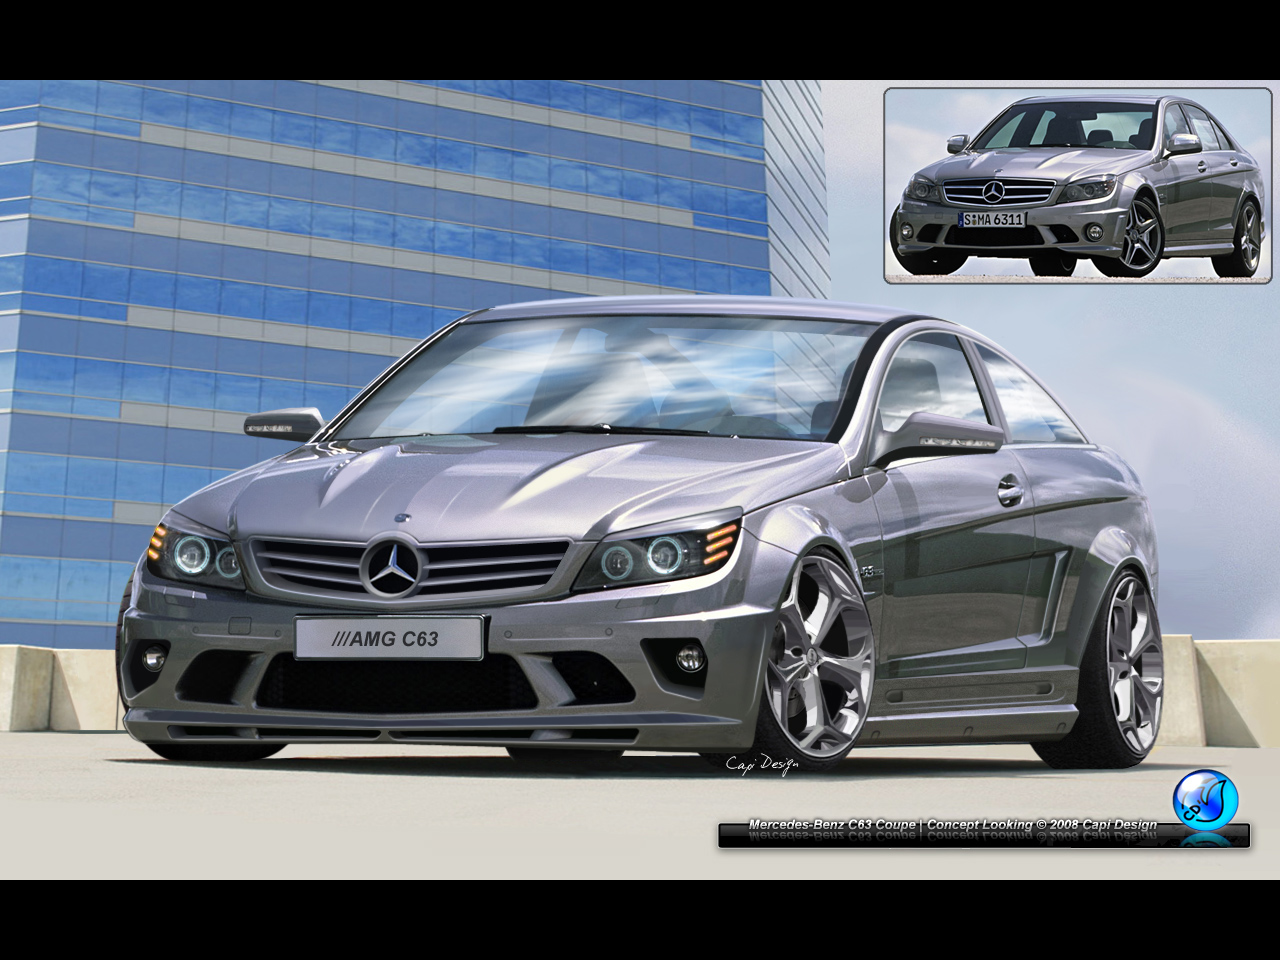 mercedes benz c63 amg by capidesign on deviantart. Black Bedroom Furniture Sets. Home Design Ideas